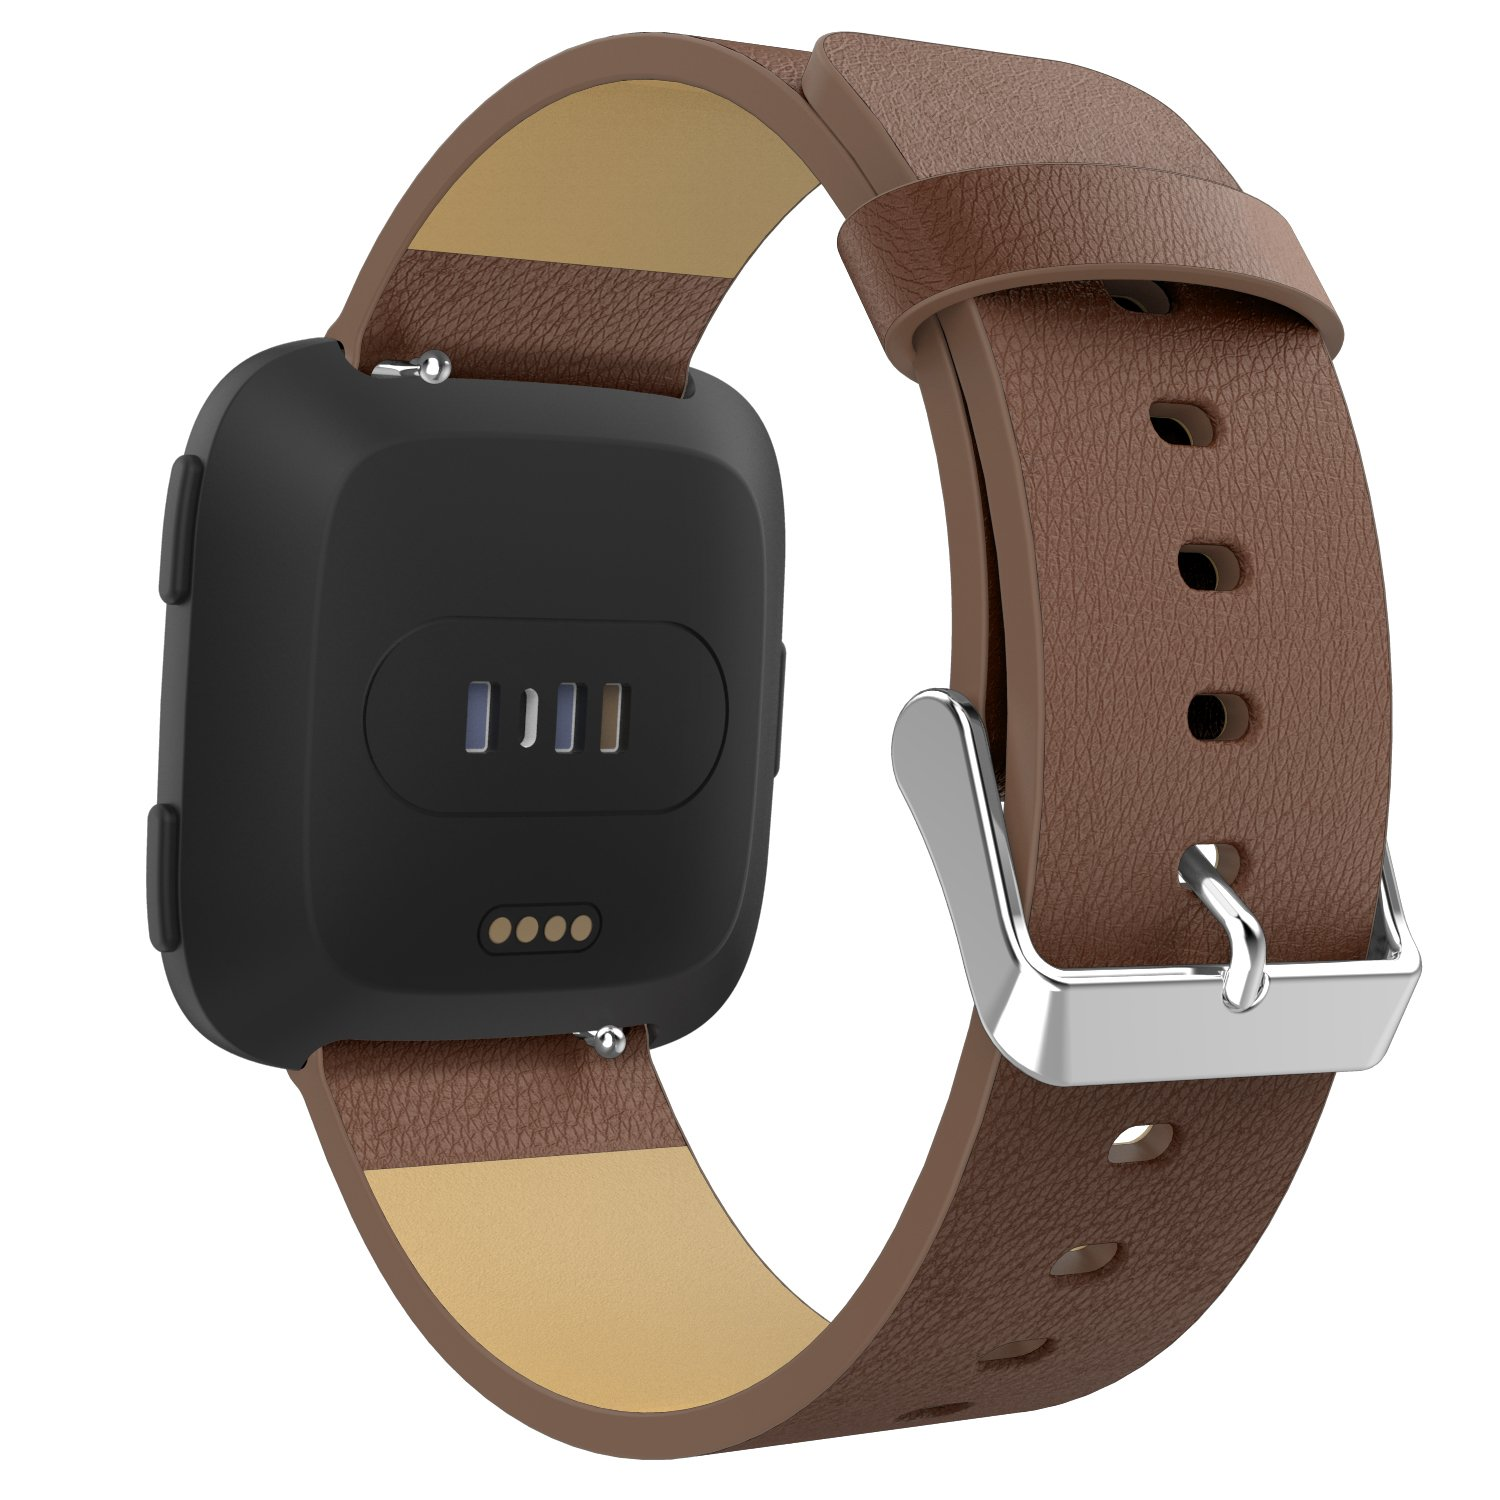 MoKo Fitbit Versa Band for Women Men, Premium Genuine Leather Lichee Pattern Replacement Strap for Fitbit Versa Fitness Wristband, Fits 5.11''-7.48'', Brown